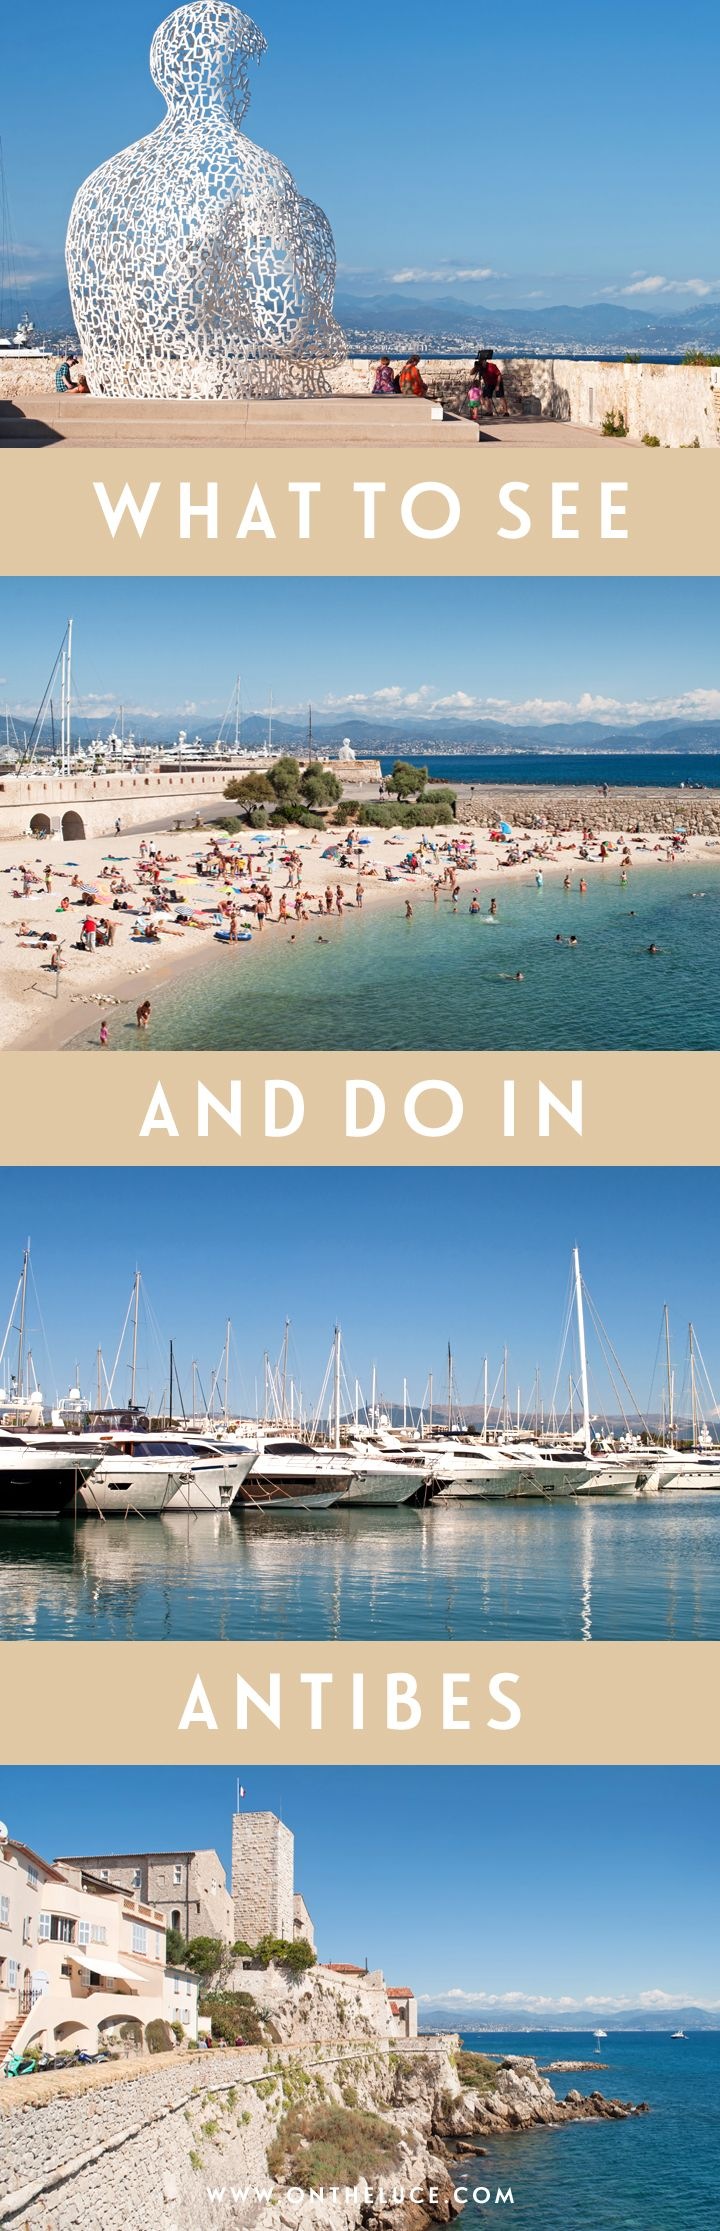 From superyacht spotting to sandy beaches – what to see and do in the beautiful walled town of Antibes on the South of France's Côte d'Azur